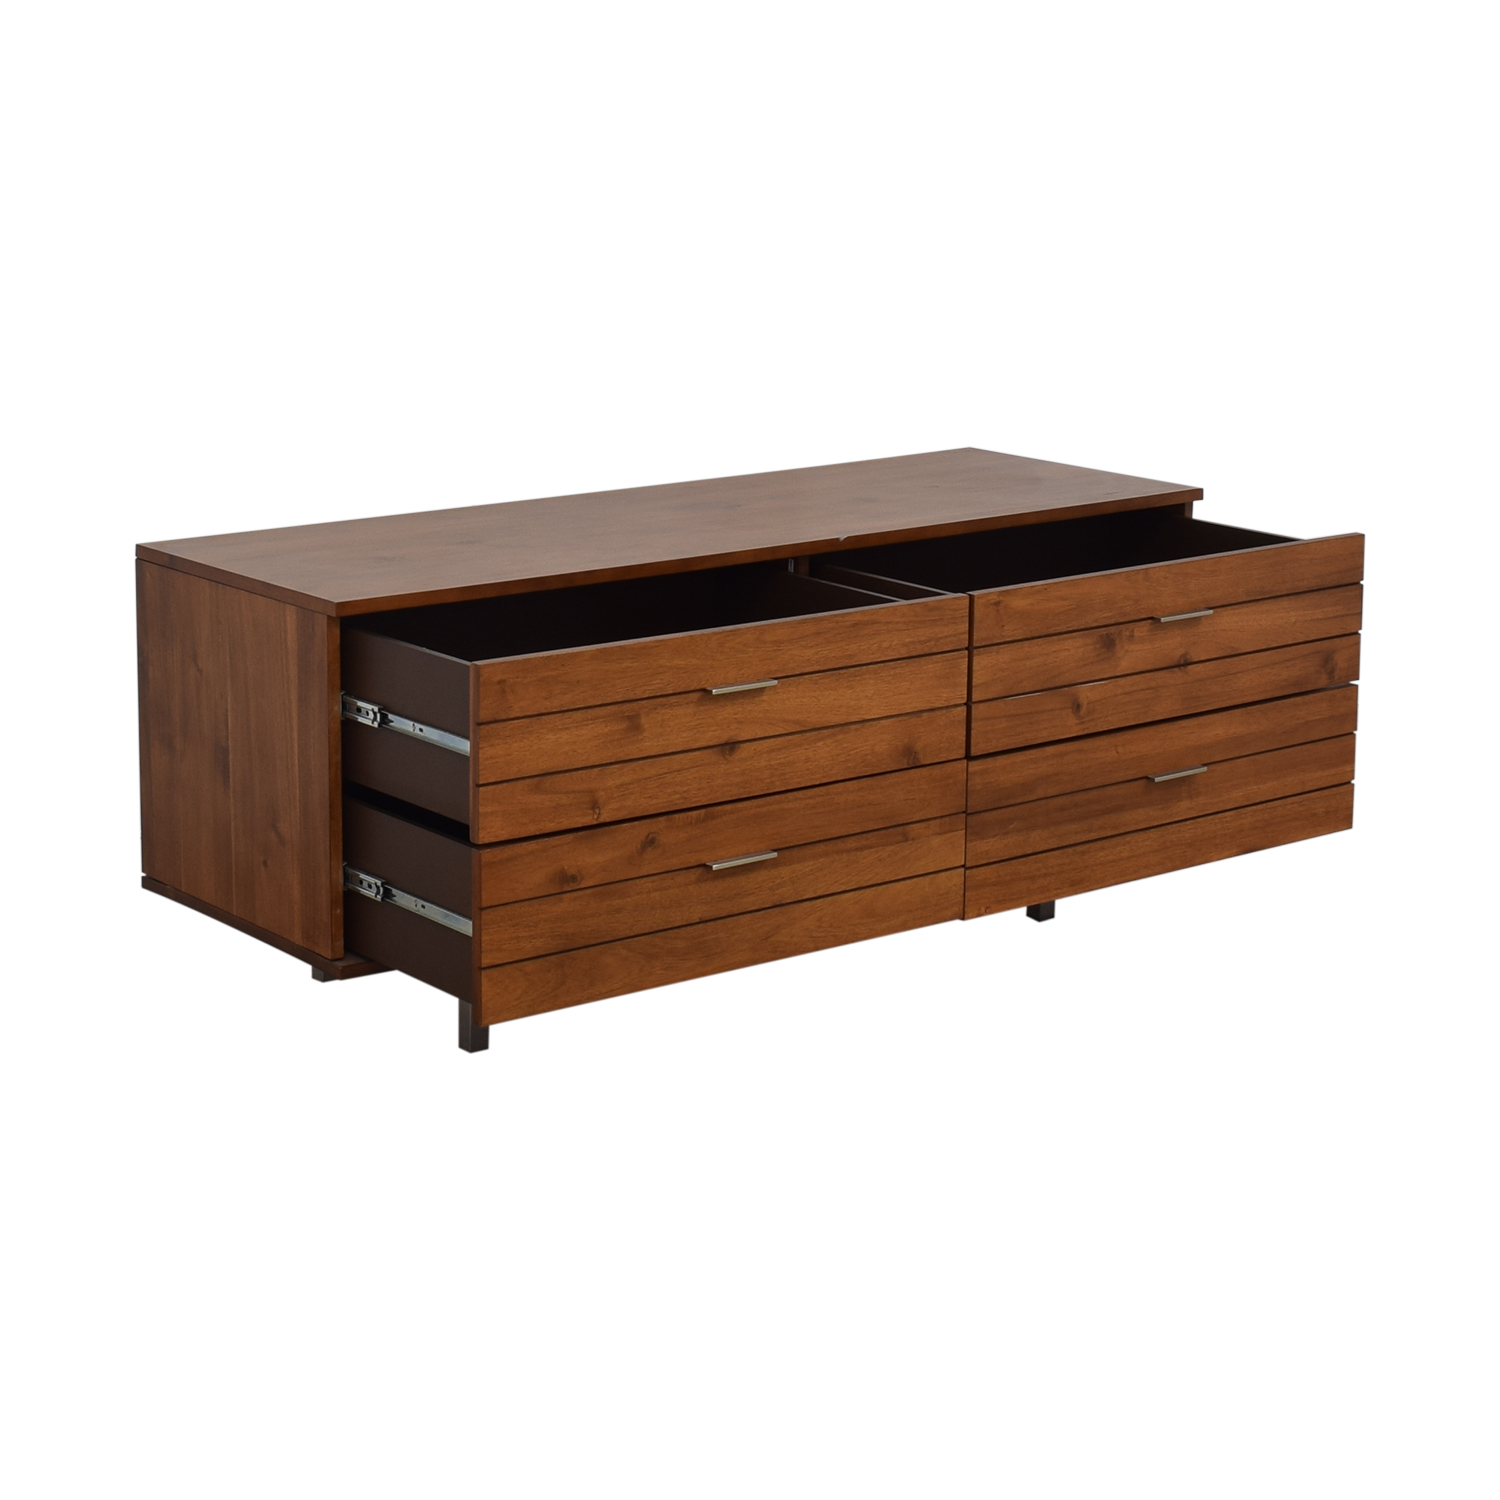 CB2 CB2 Junction Four-Drawer Dresser nj